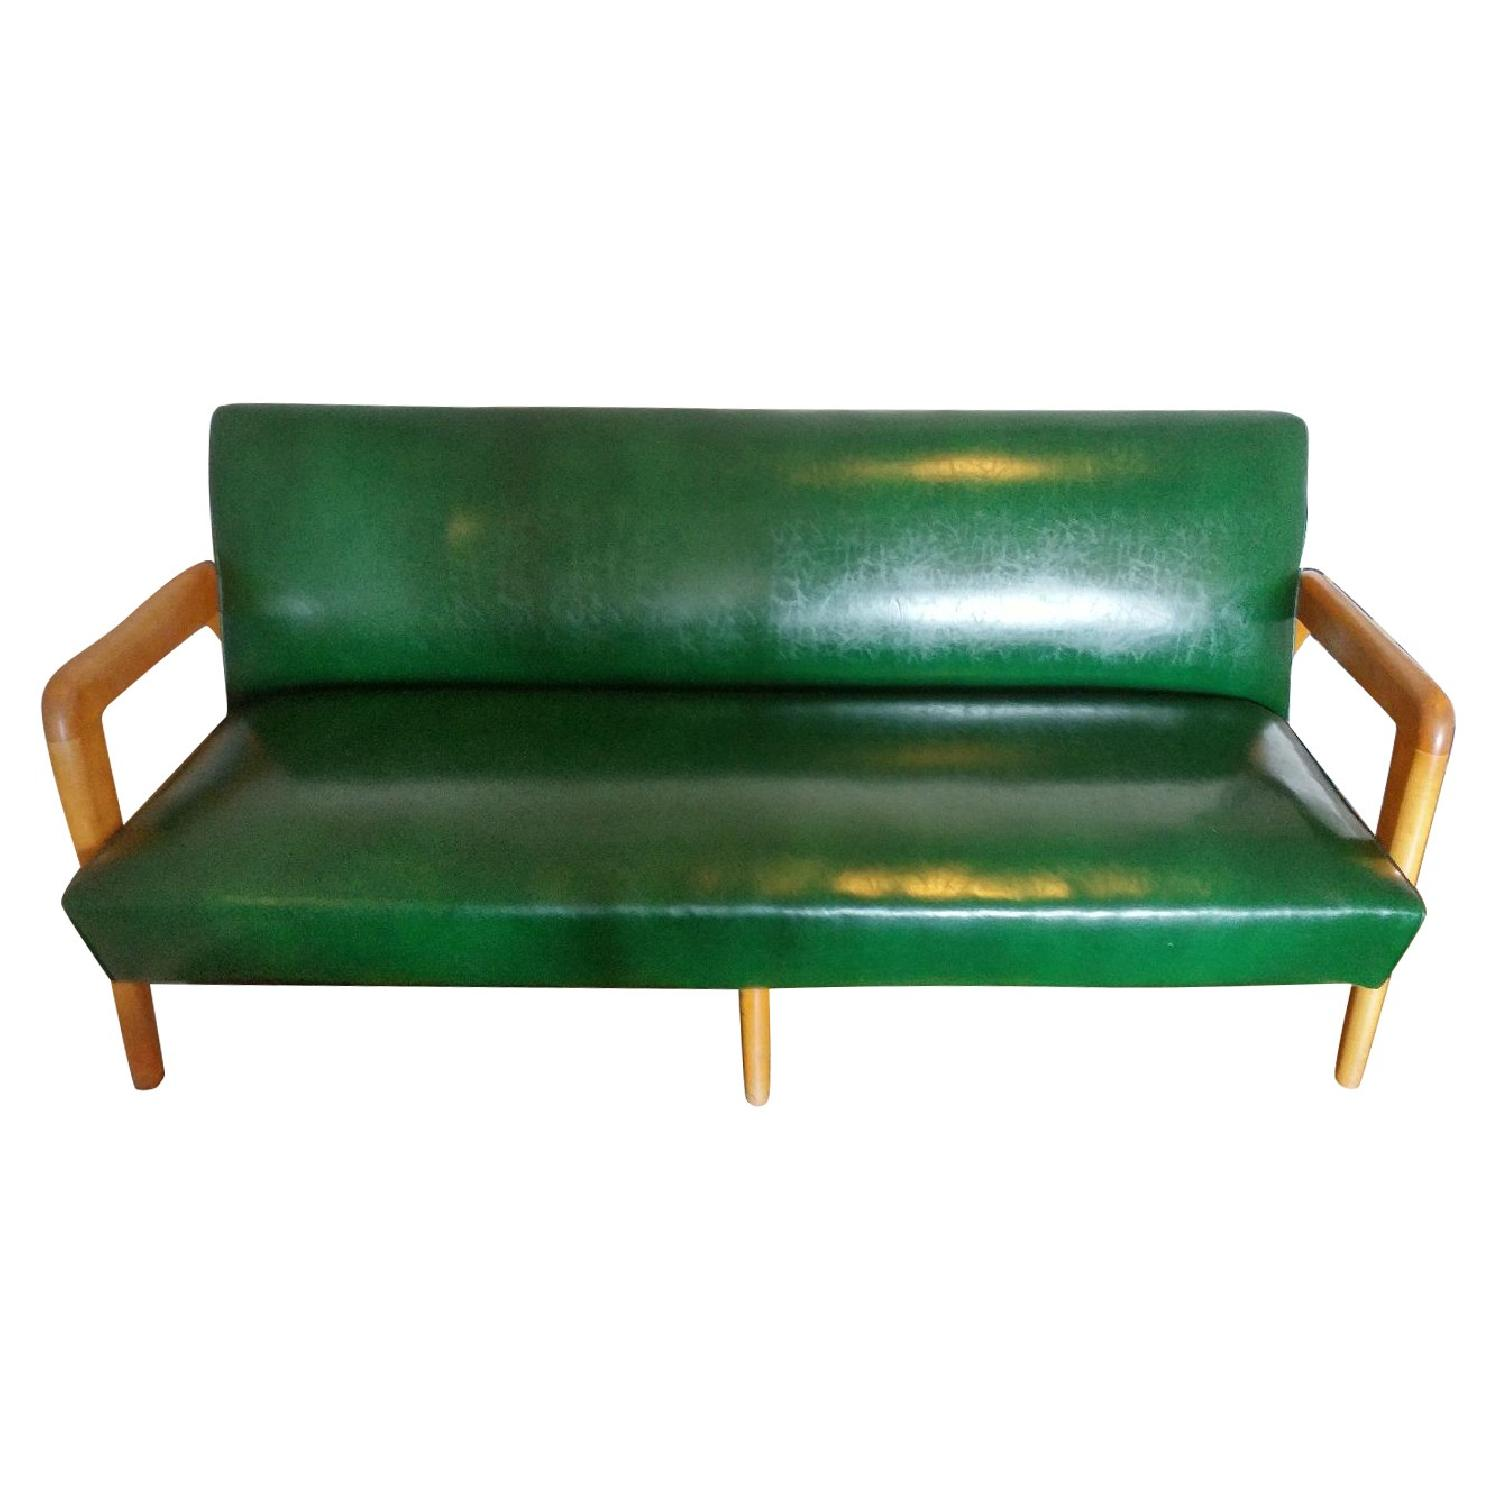 J.B. Van Sciver Co. Green Leather Couch + 2 Chairs - image-0